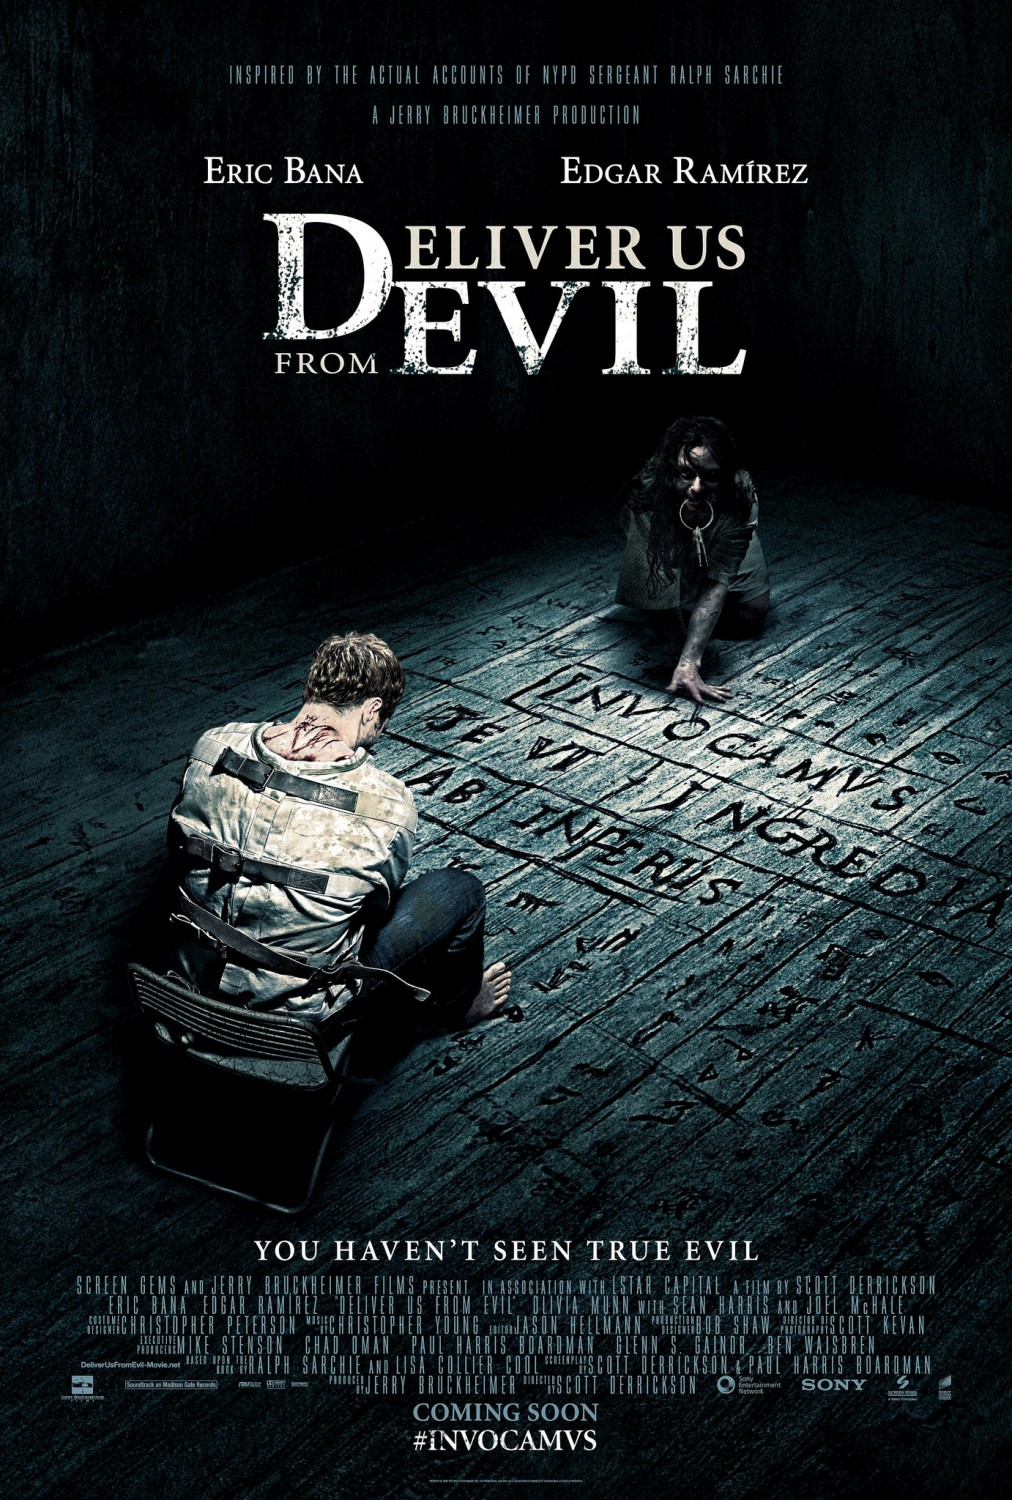 Extra Large Movie Poster Image for Deliver Us from Evil